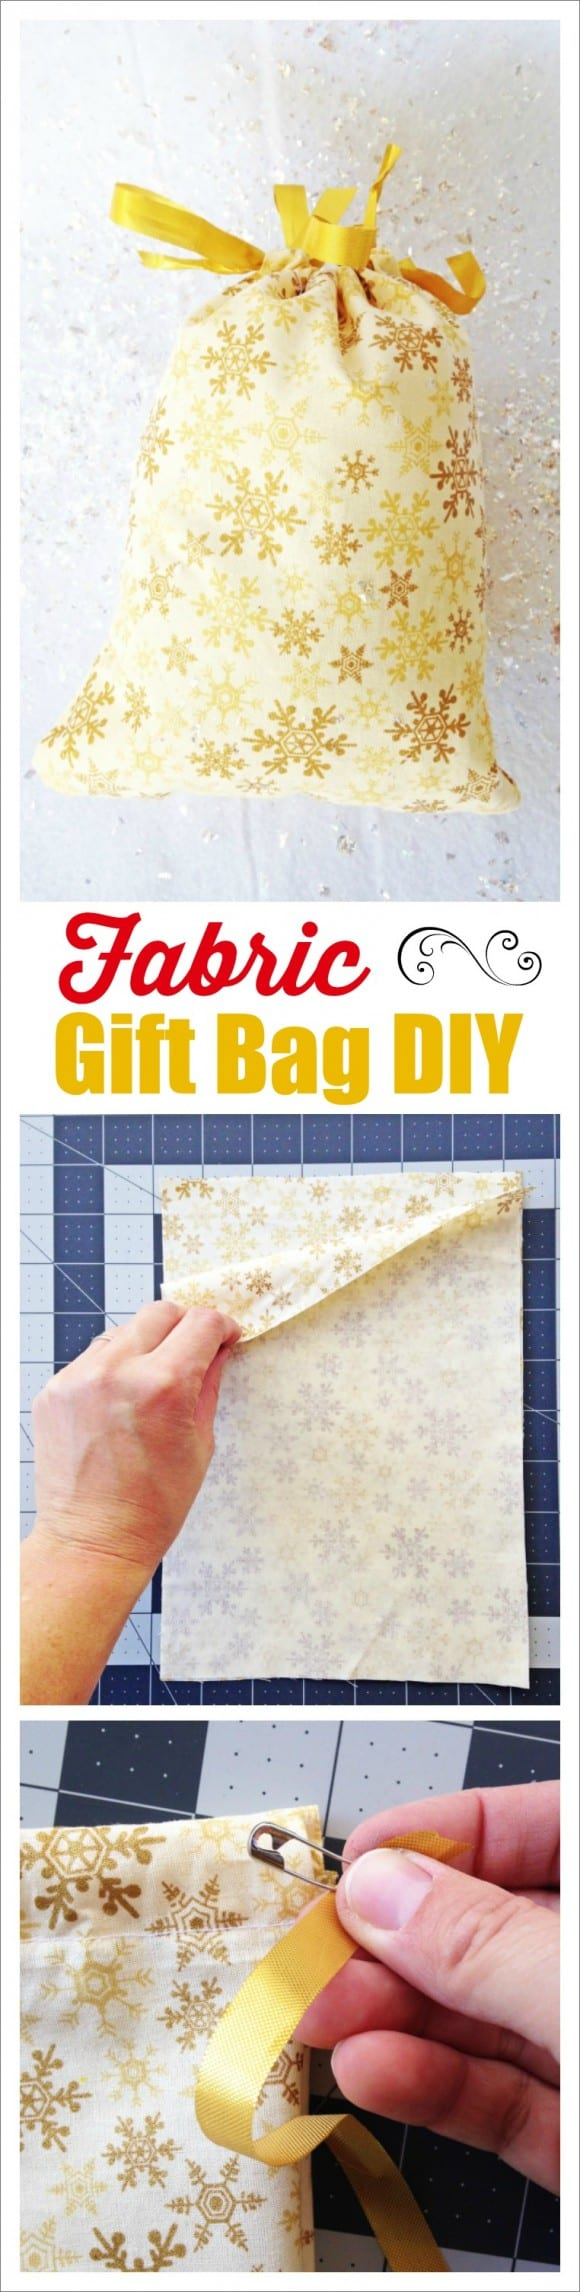 Fabric Gift Bag DIY | CatchMyParty.com